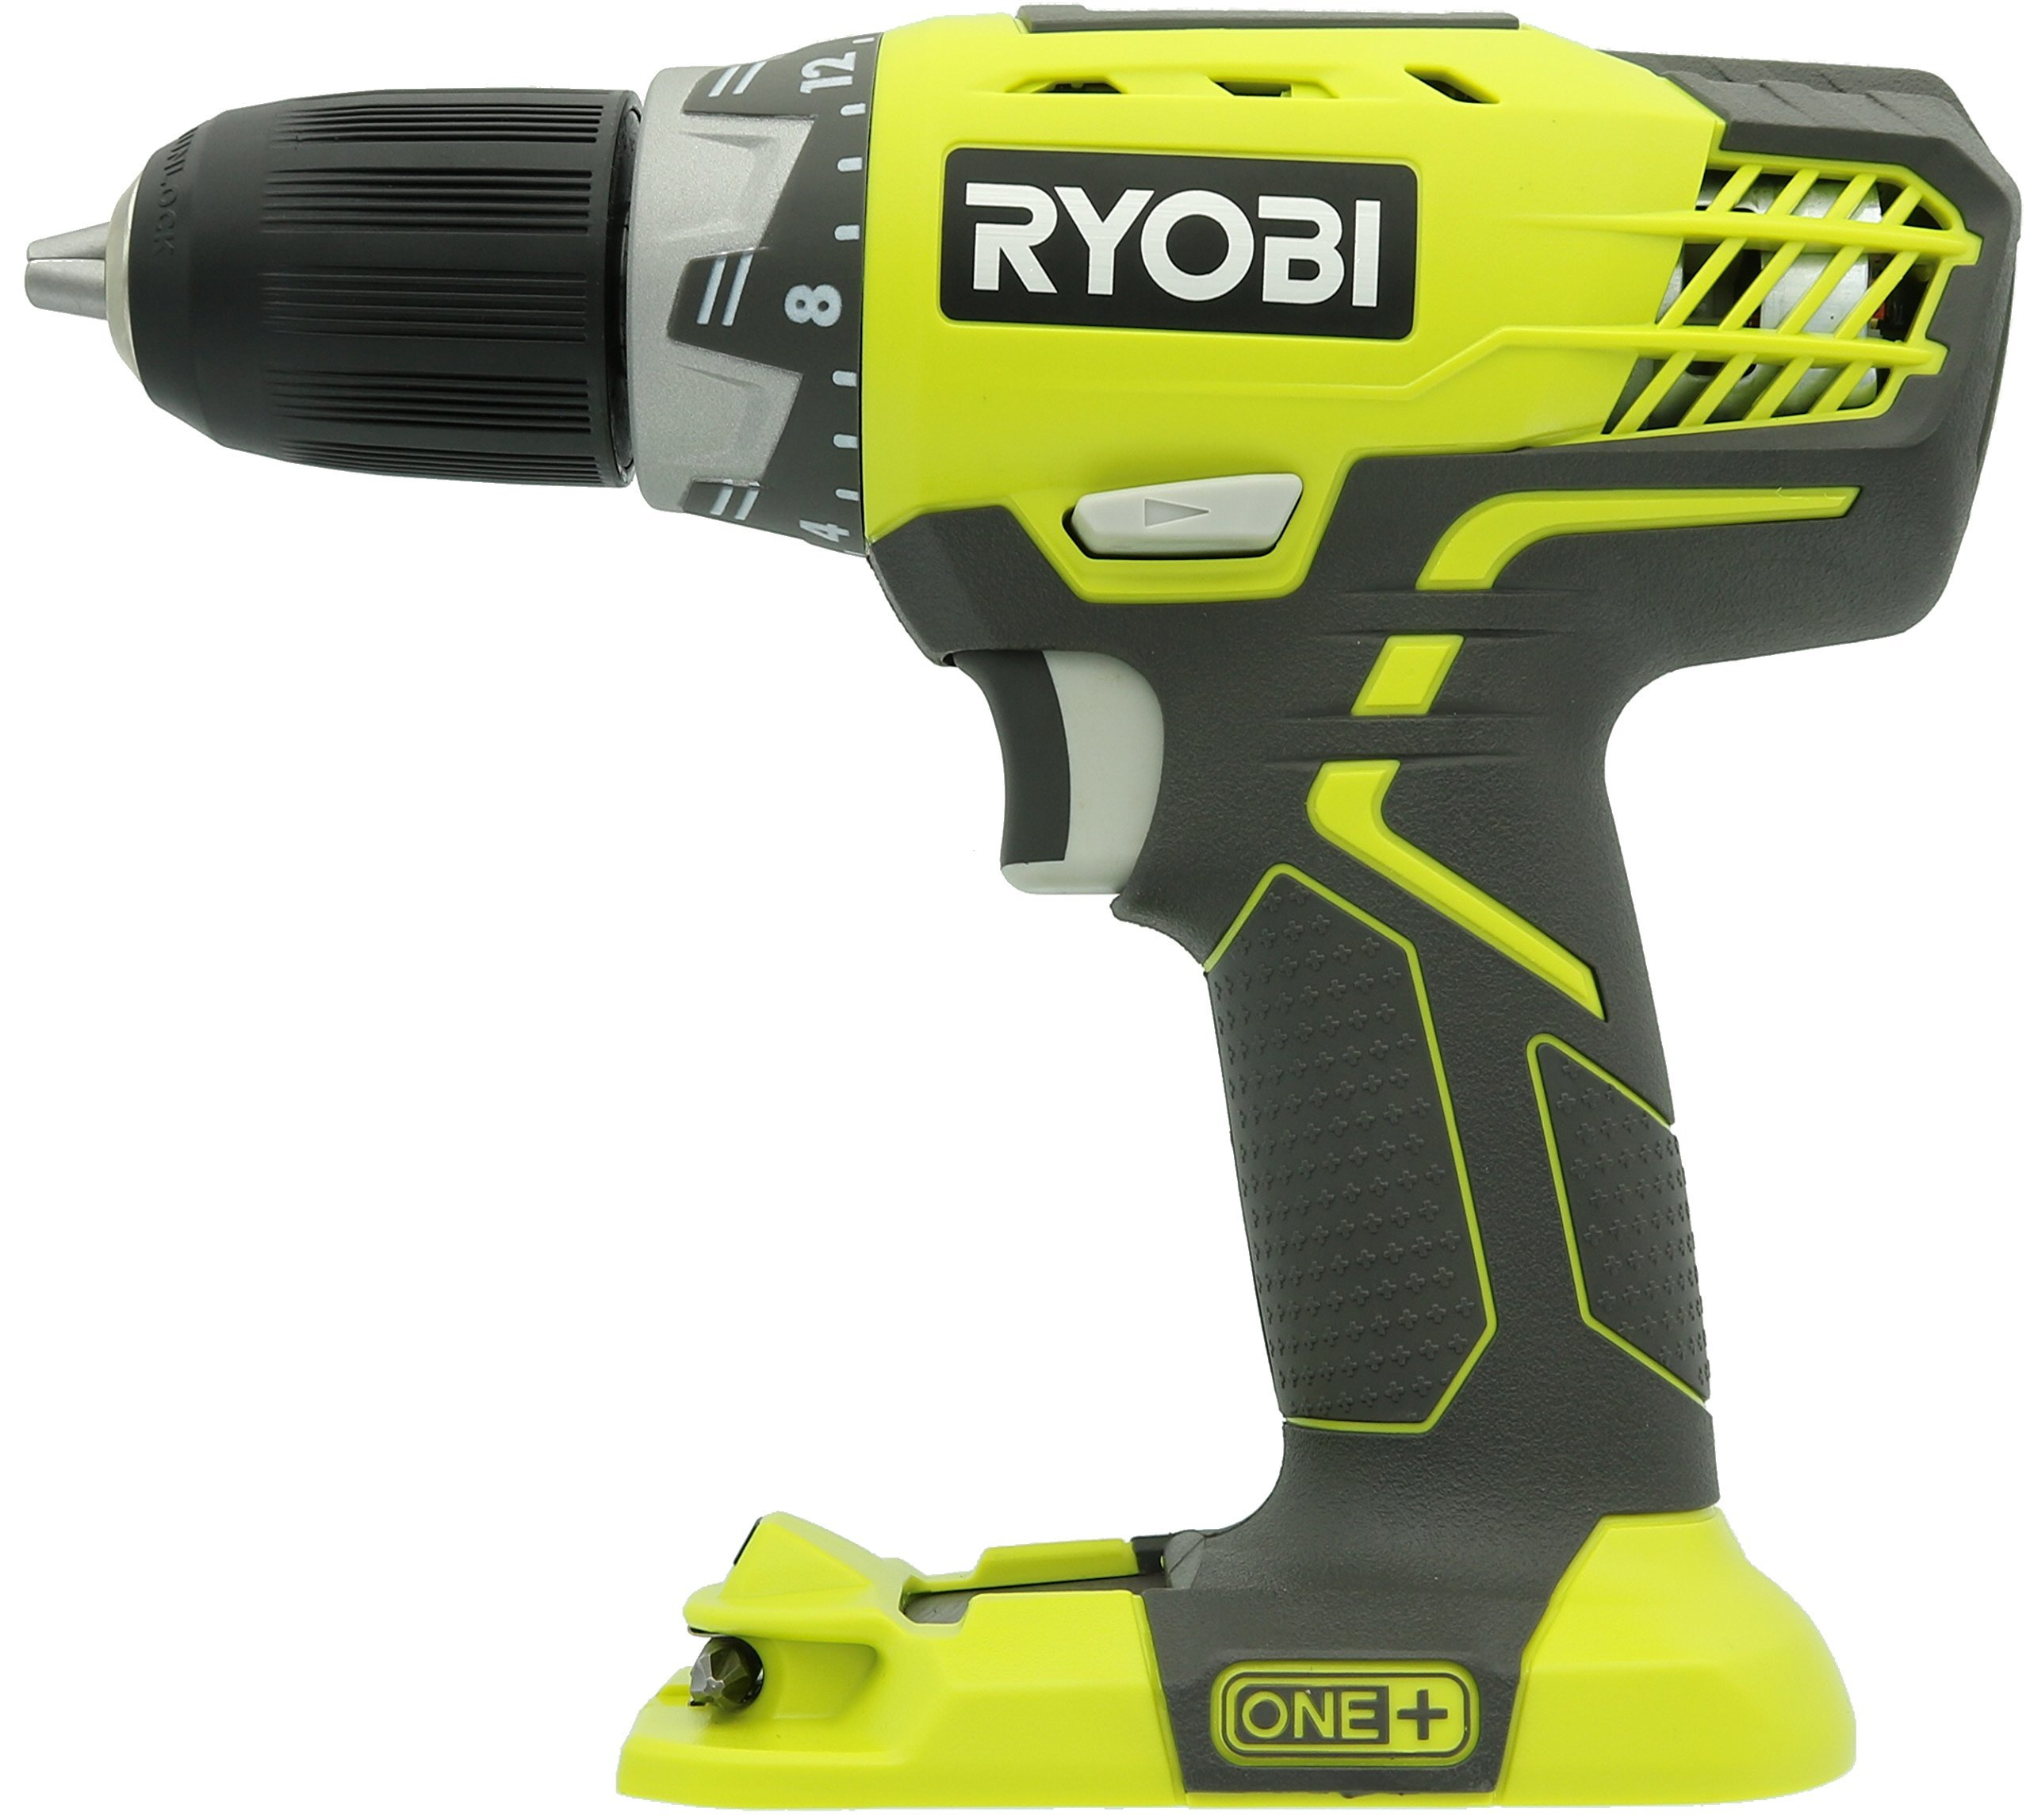 Ryobi P208 One+ 18V Lithium Ion Drill / Driver with 1/2 Inch Keyless Chuck (Batteries Not Included, Power Tool Only) (Certified Refurbished)